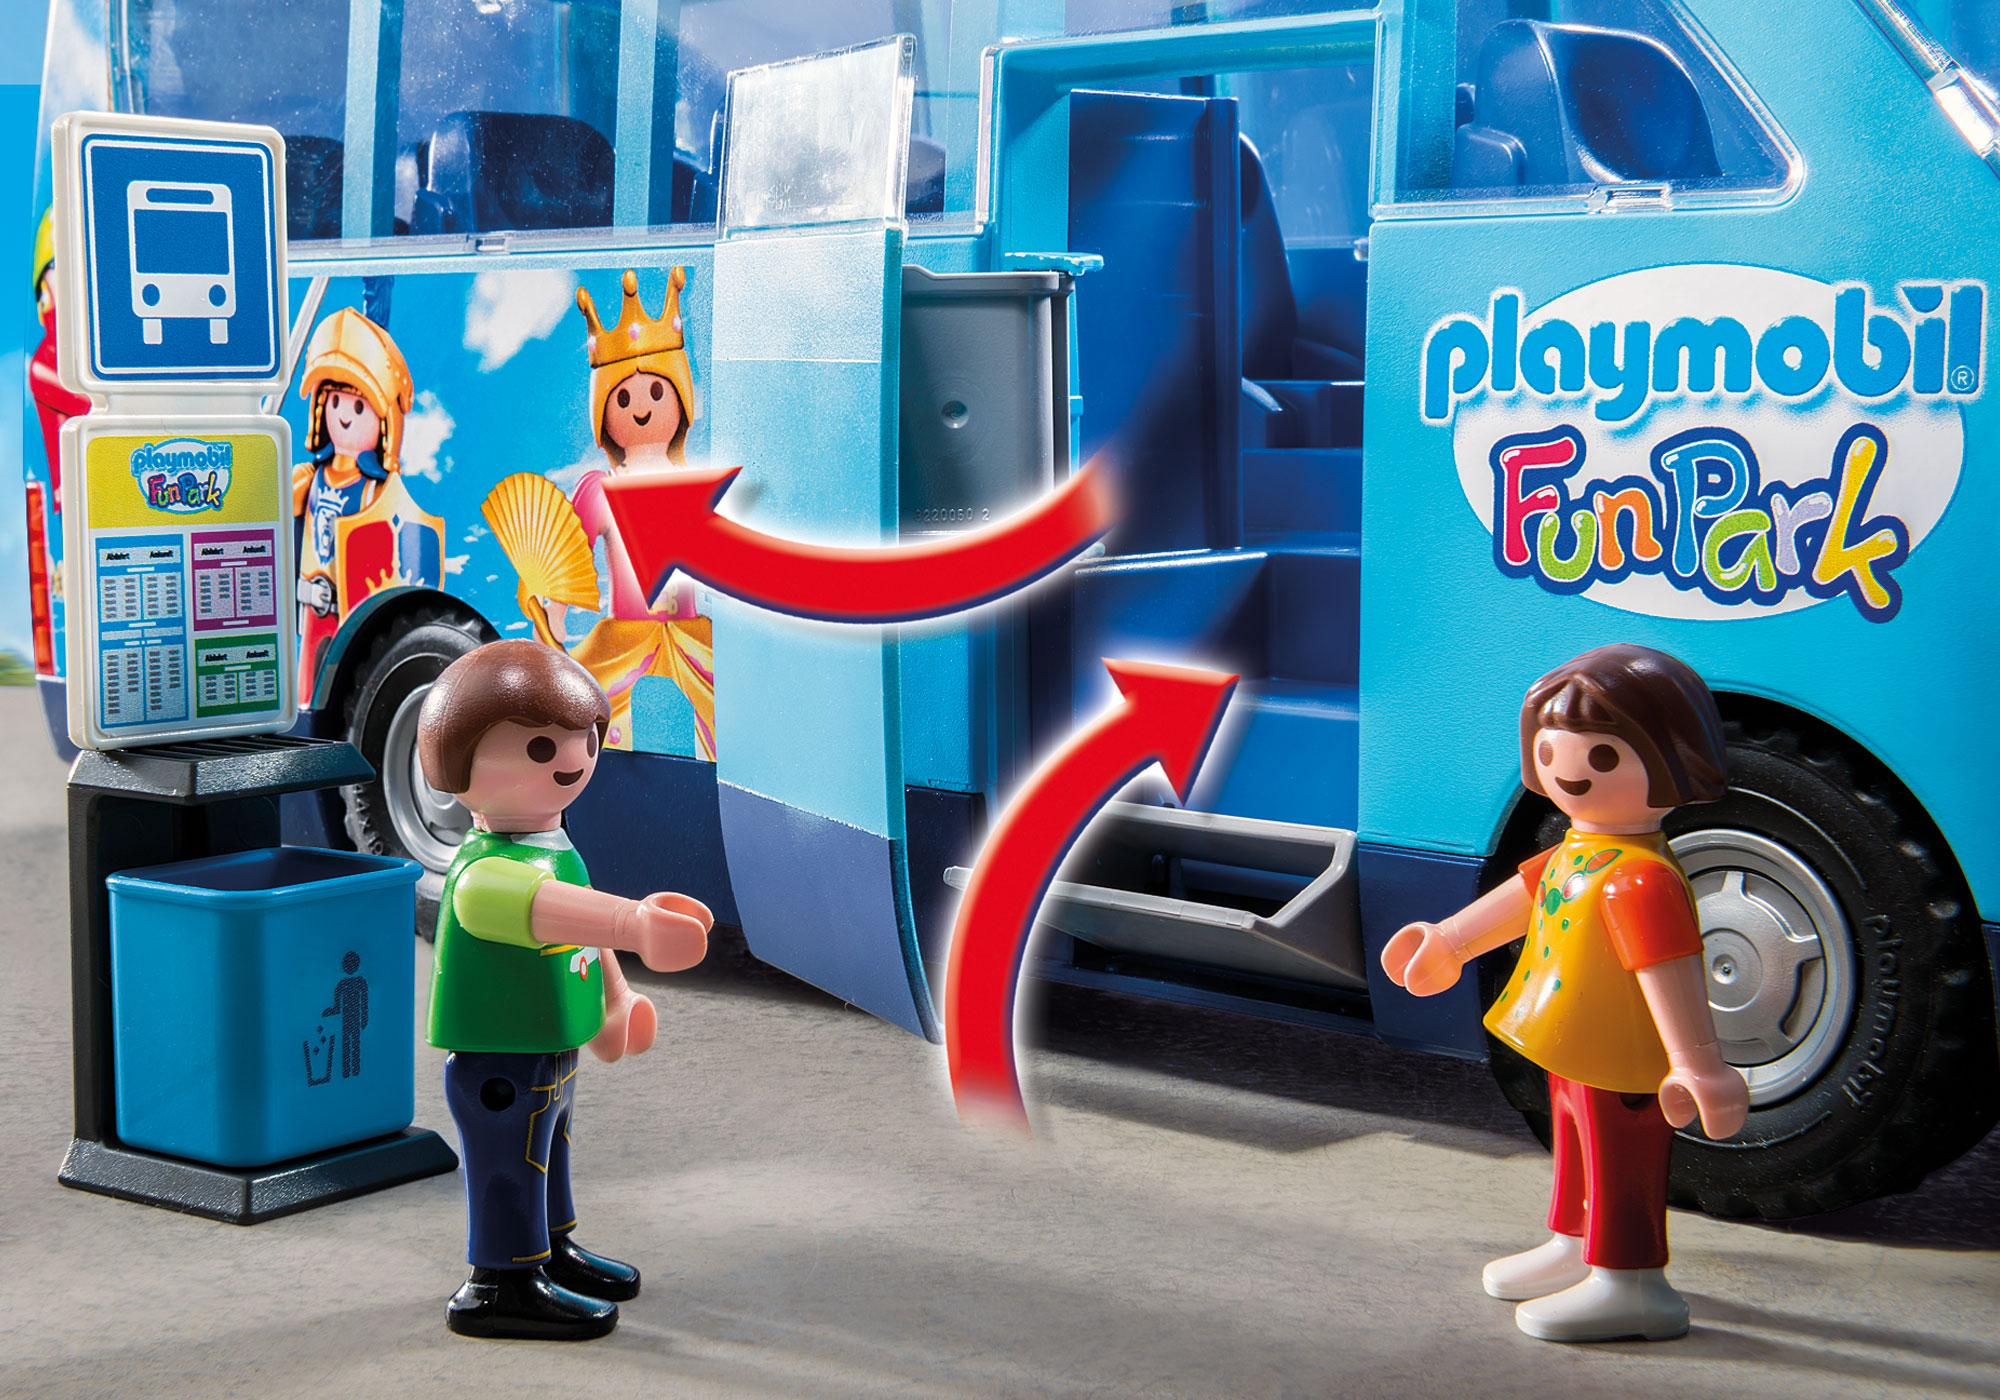 http://media.playmobil.com/i/playmobil/9117_product_extra1